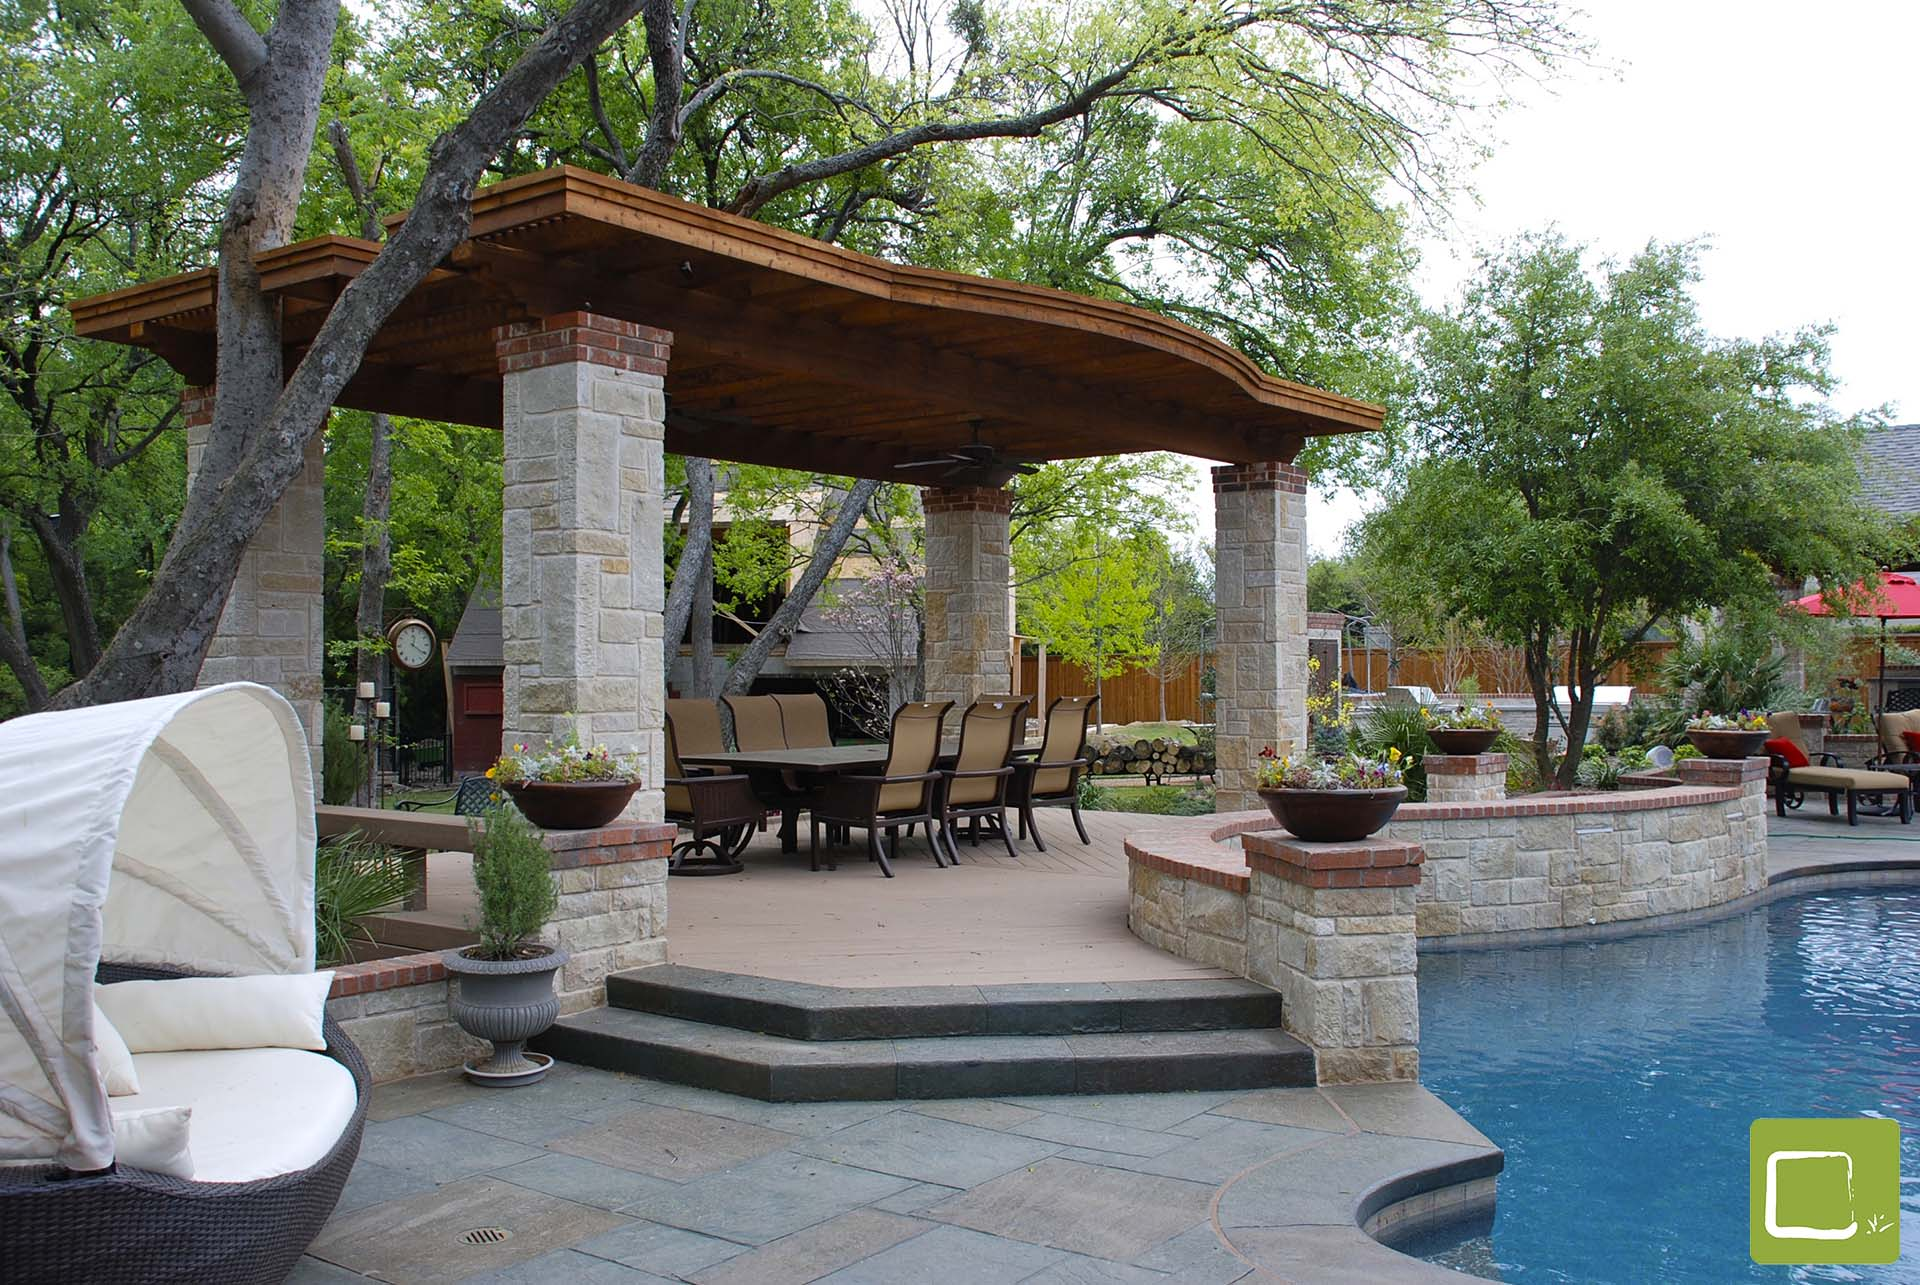 arbor stone pool landscape transitional modern